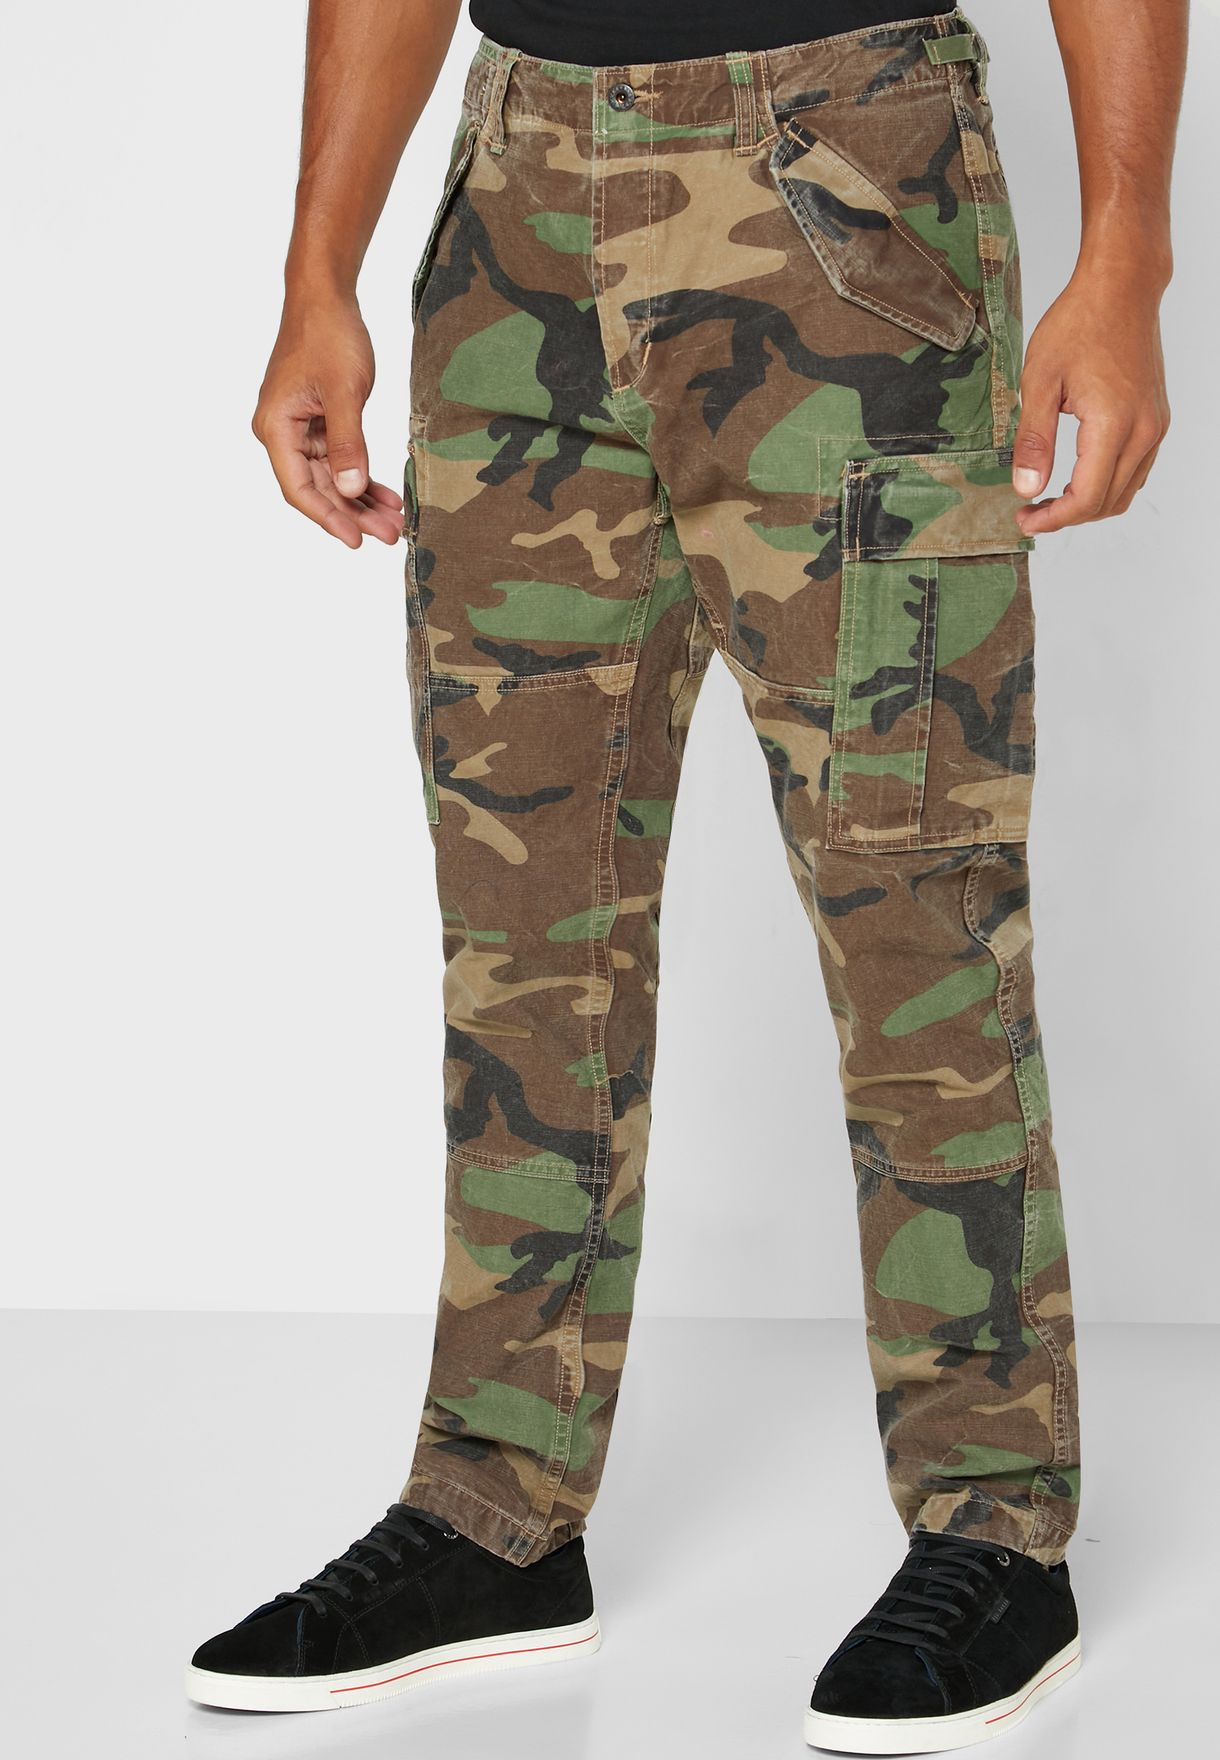 Camo Slim Fit Cargo Pants